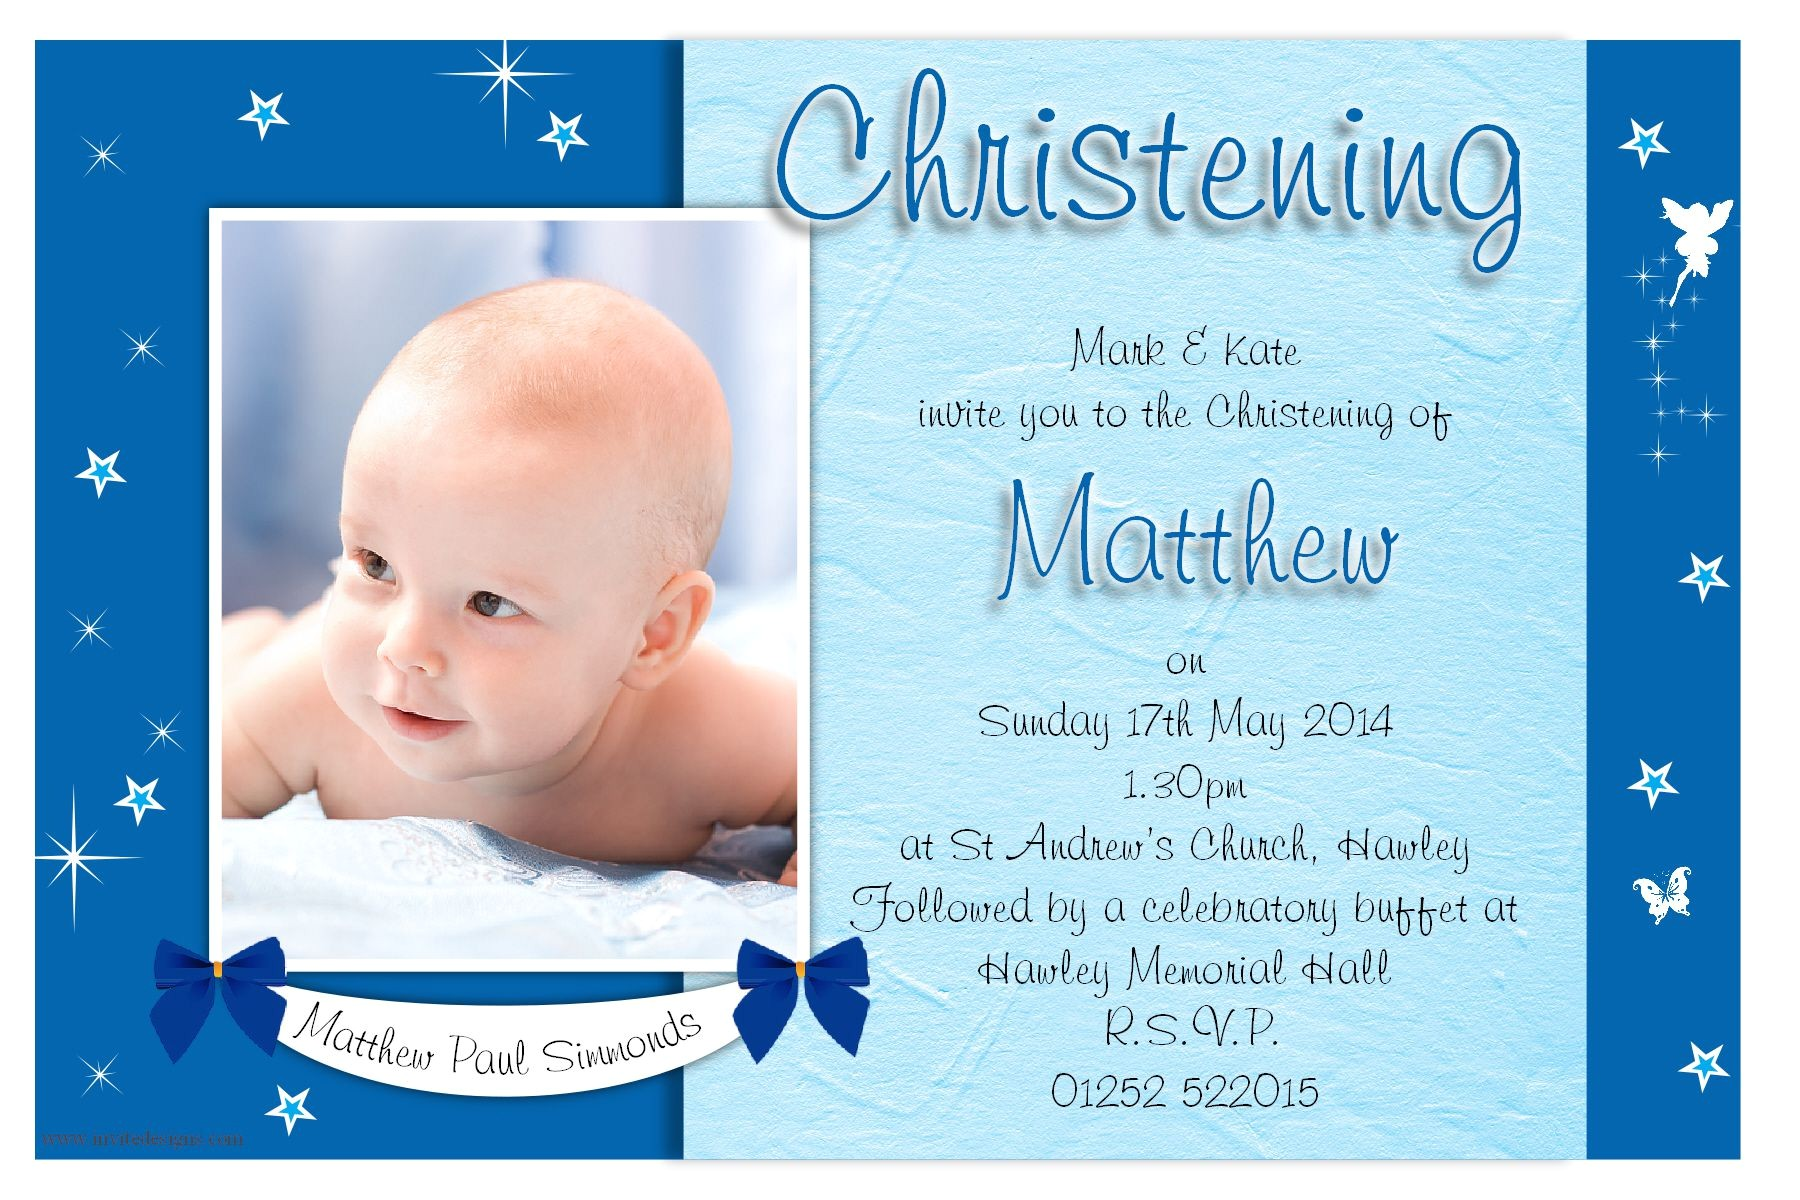 christening invitation cards